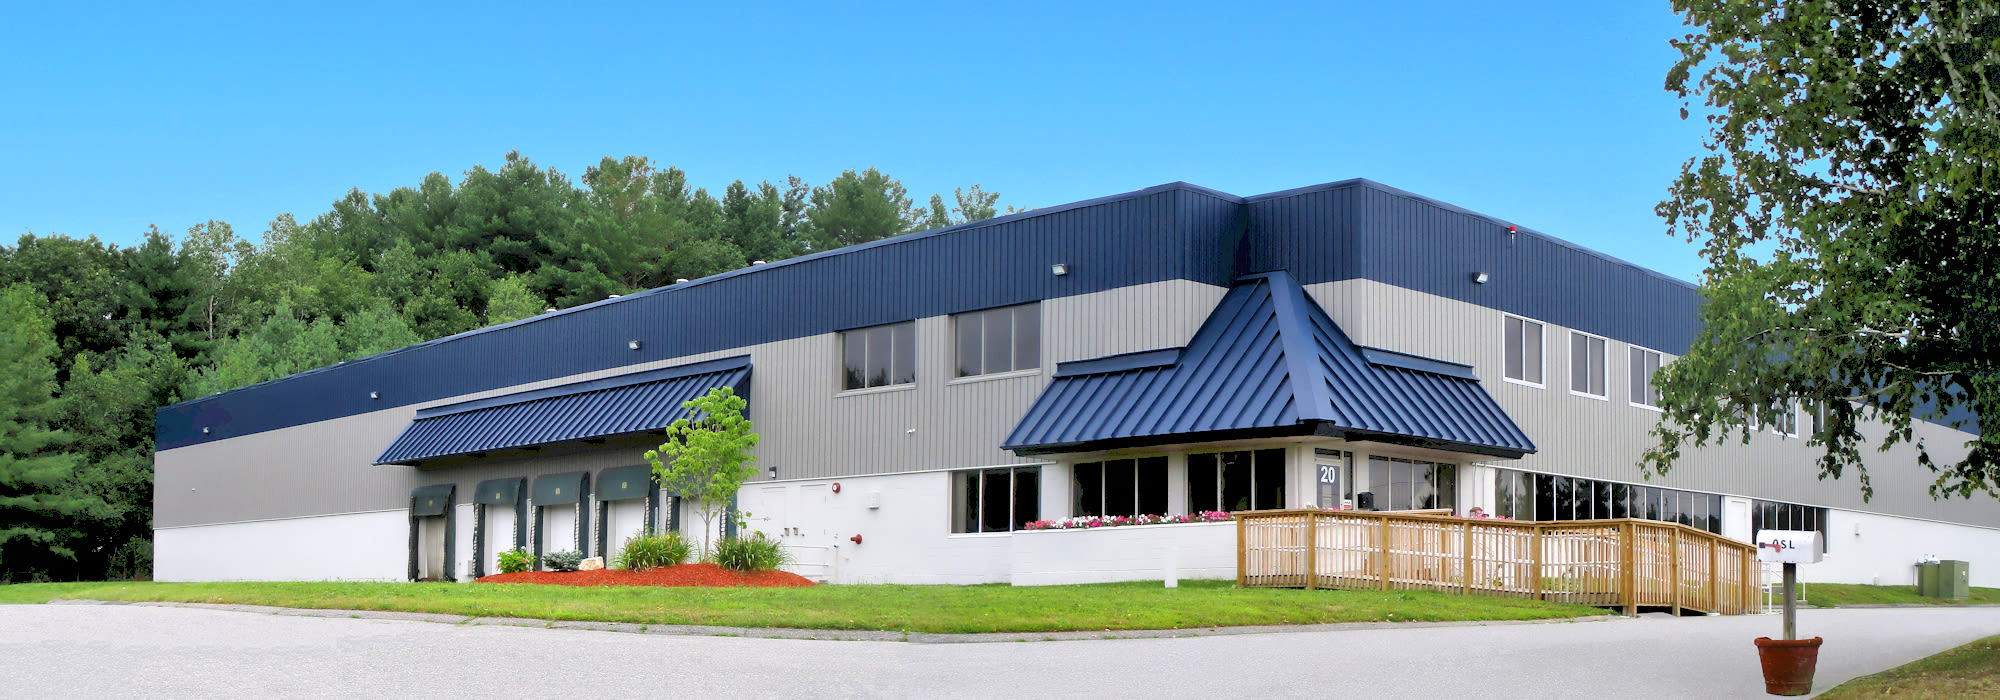 Prime Storage in Dracut, MA